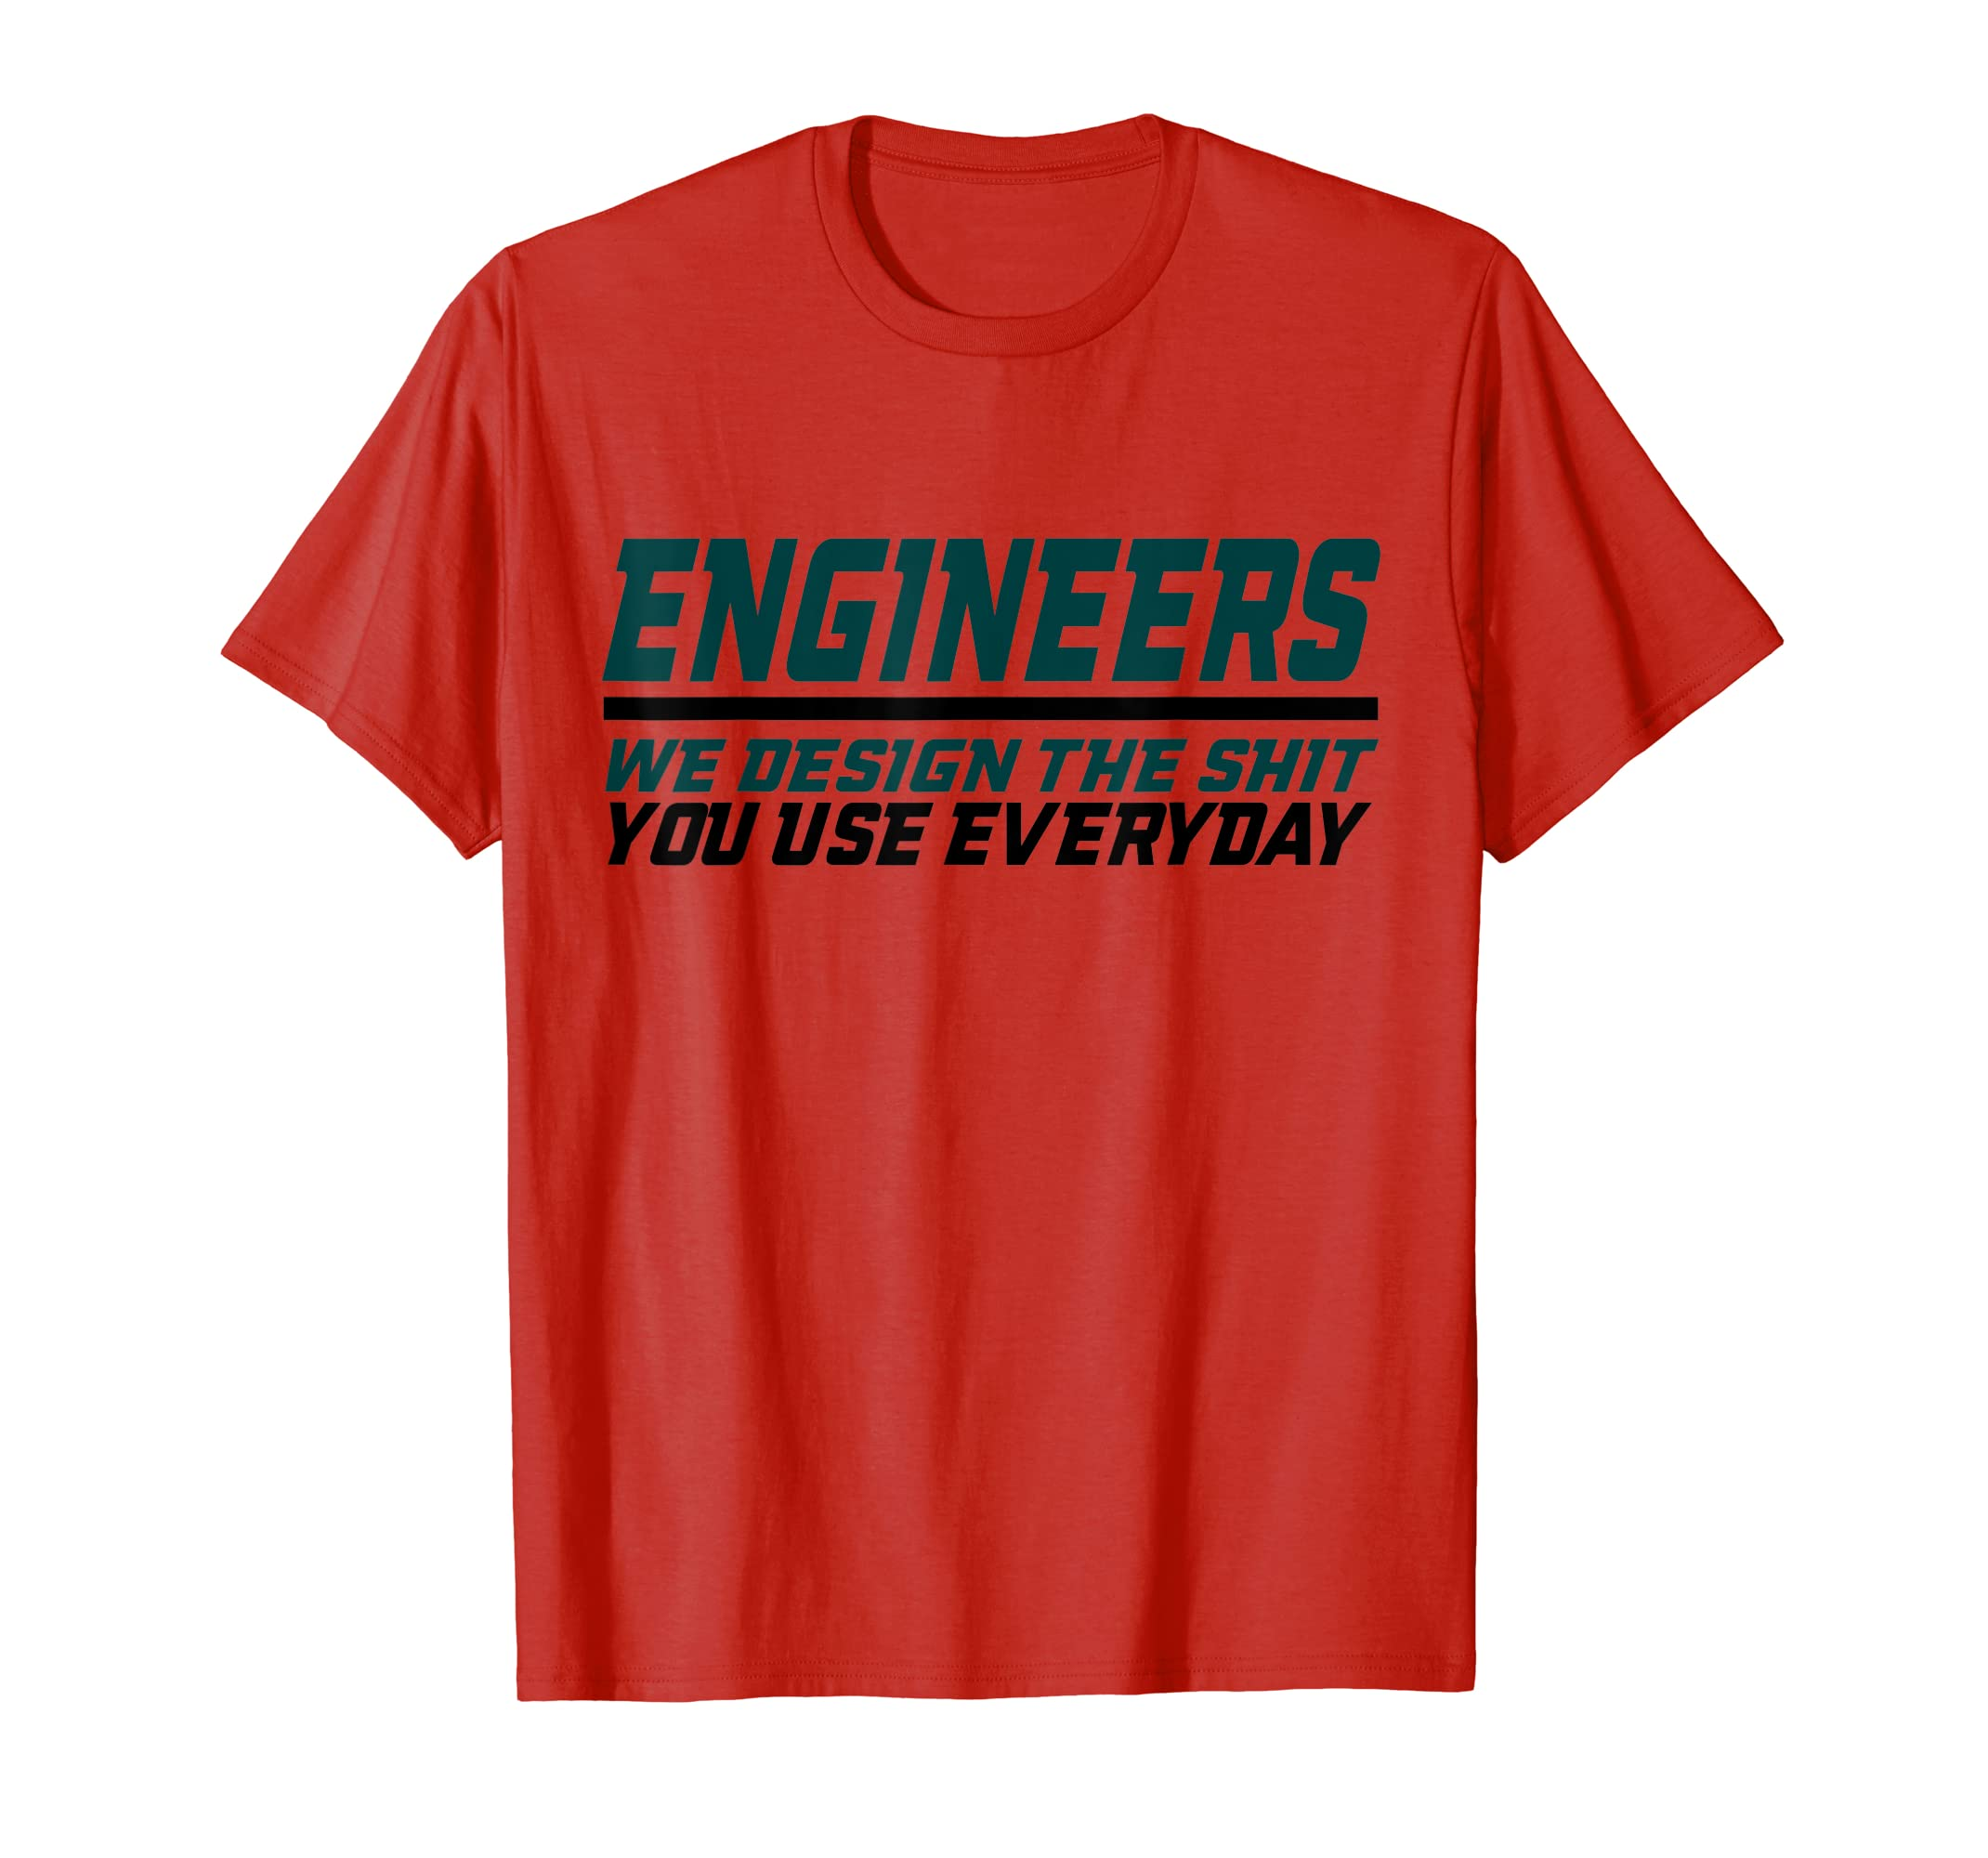 8a67406c7fa1 Amazon.com: Engineers Design the Shit You Use Everyday engineering shirt:  Clothing